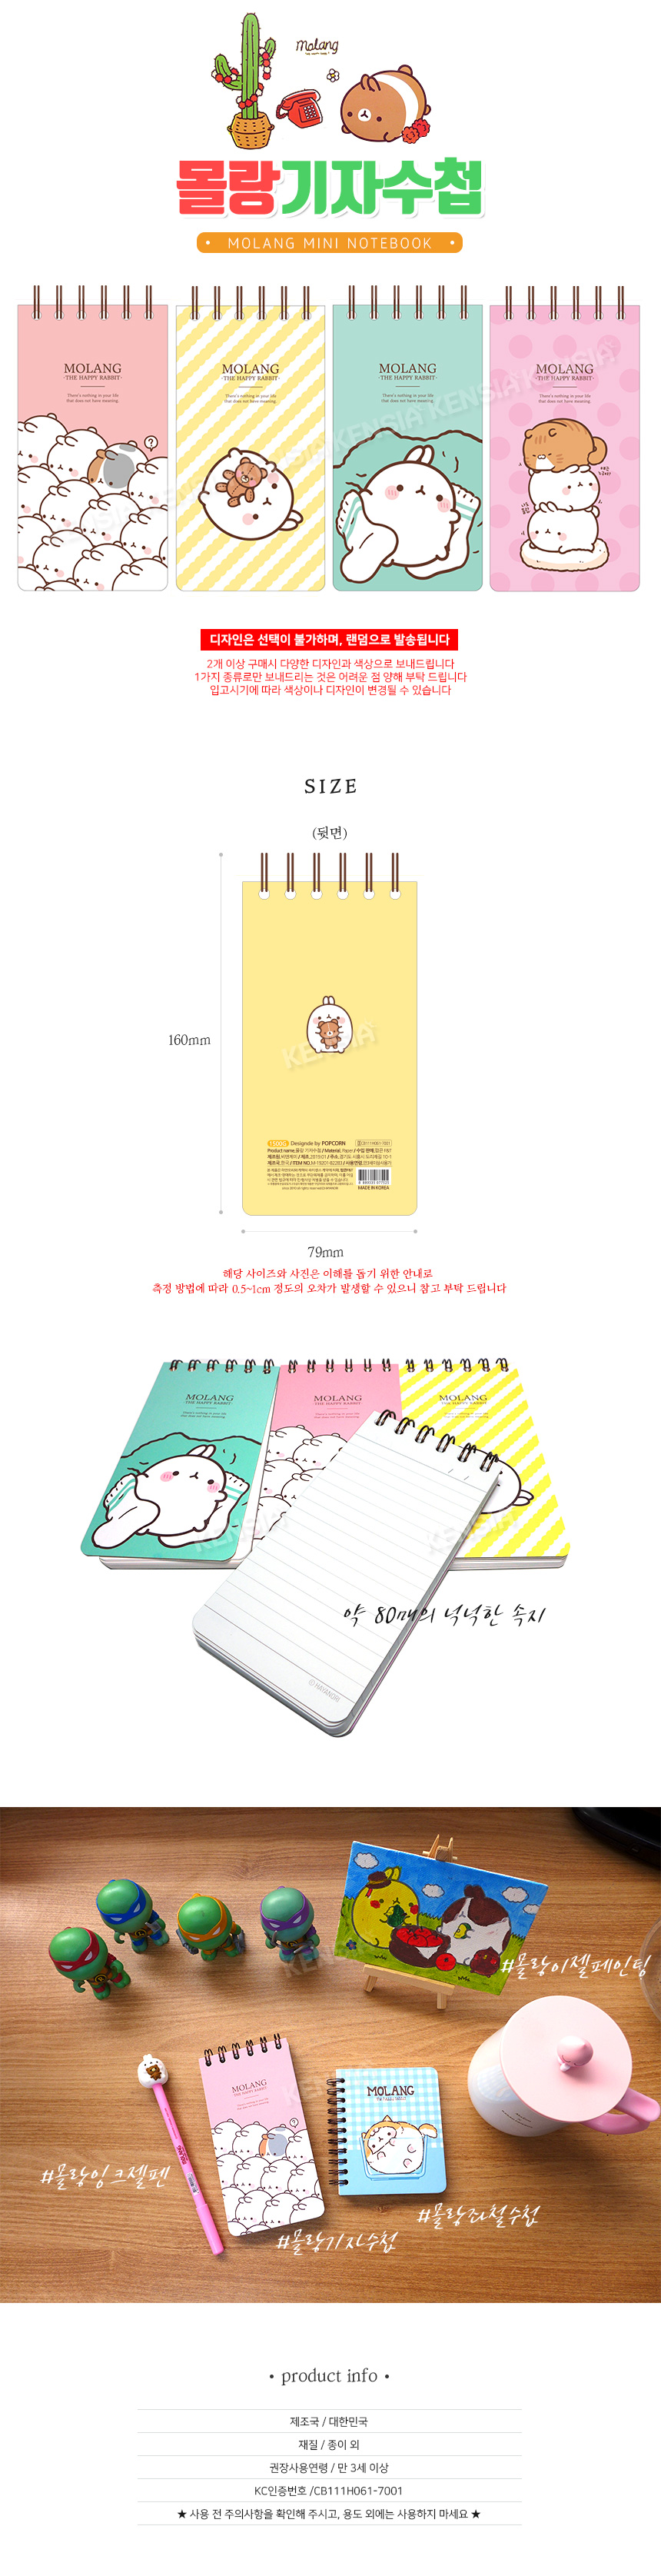 2000_molang_reporters_notebook.jpg